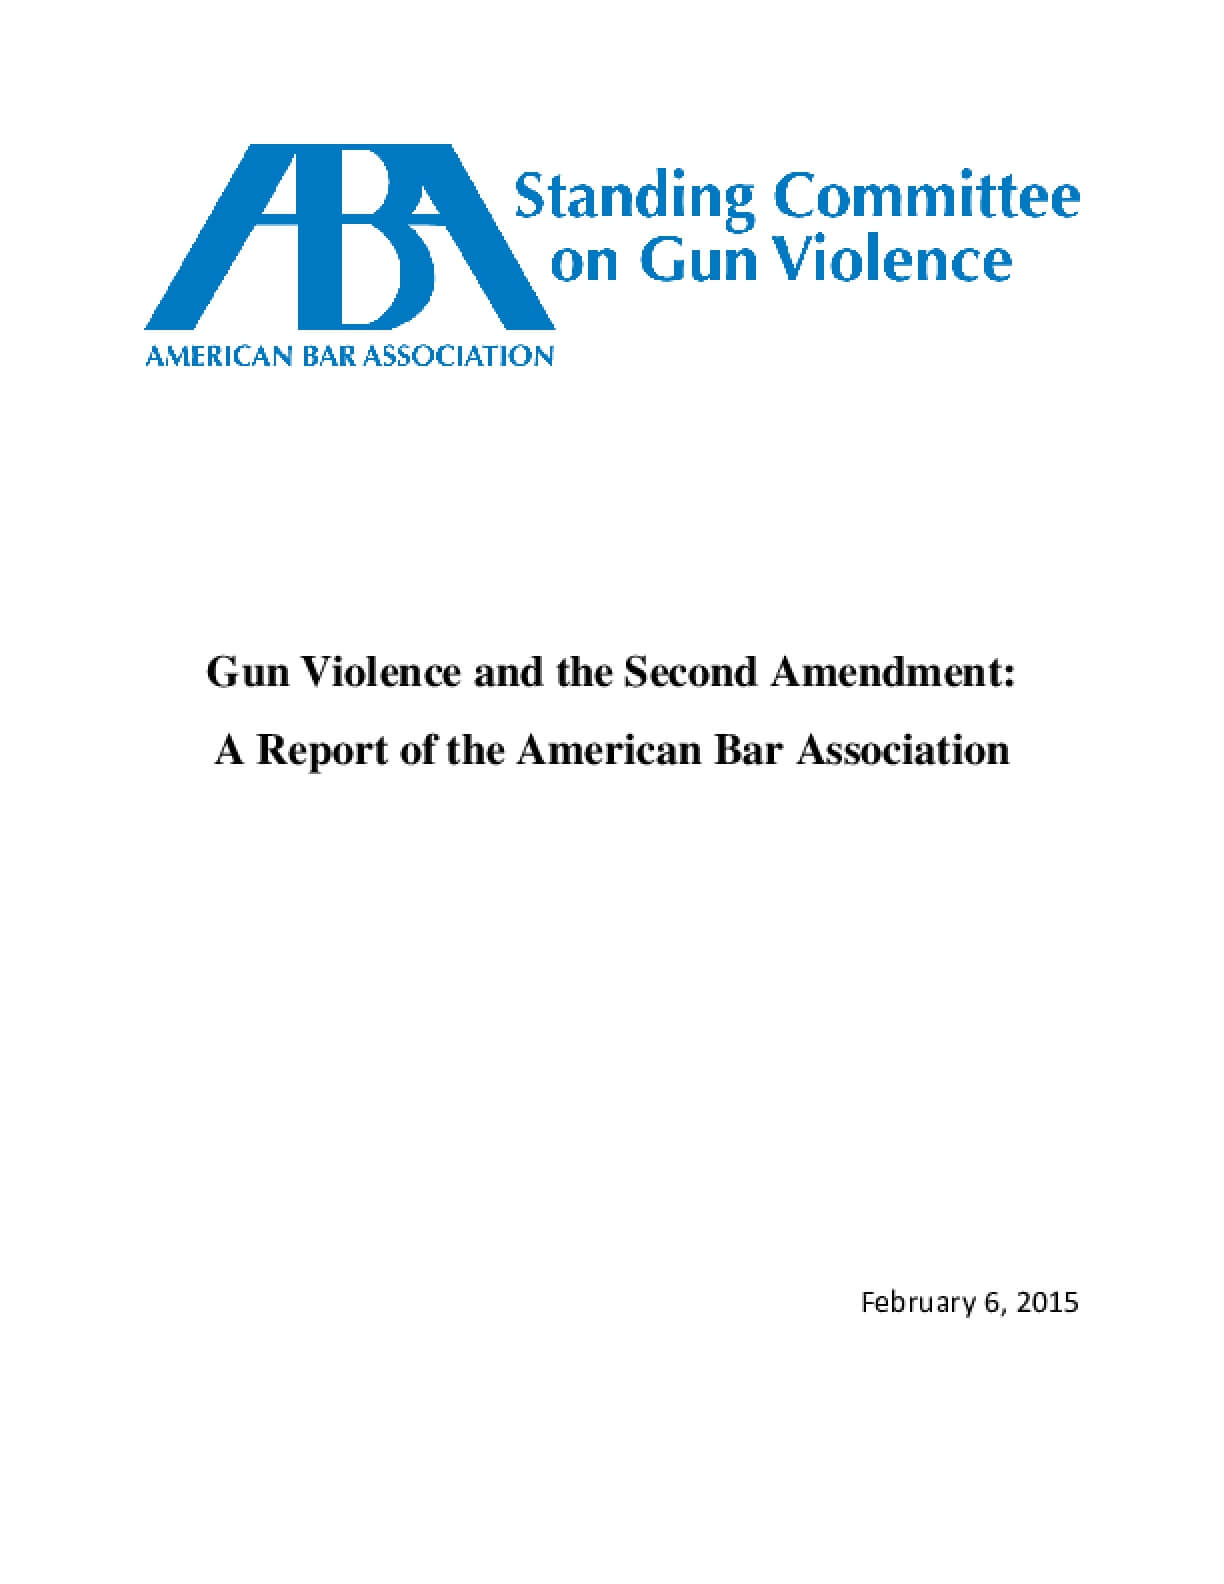 Gun Violence and the Second Amendment: A Report of the American Bar Association